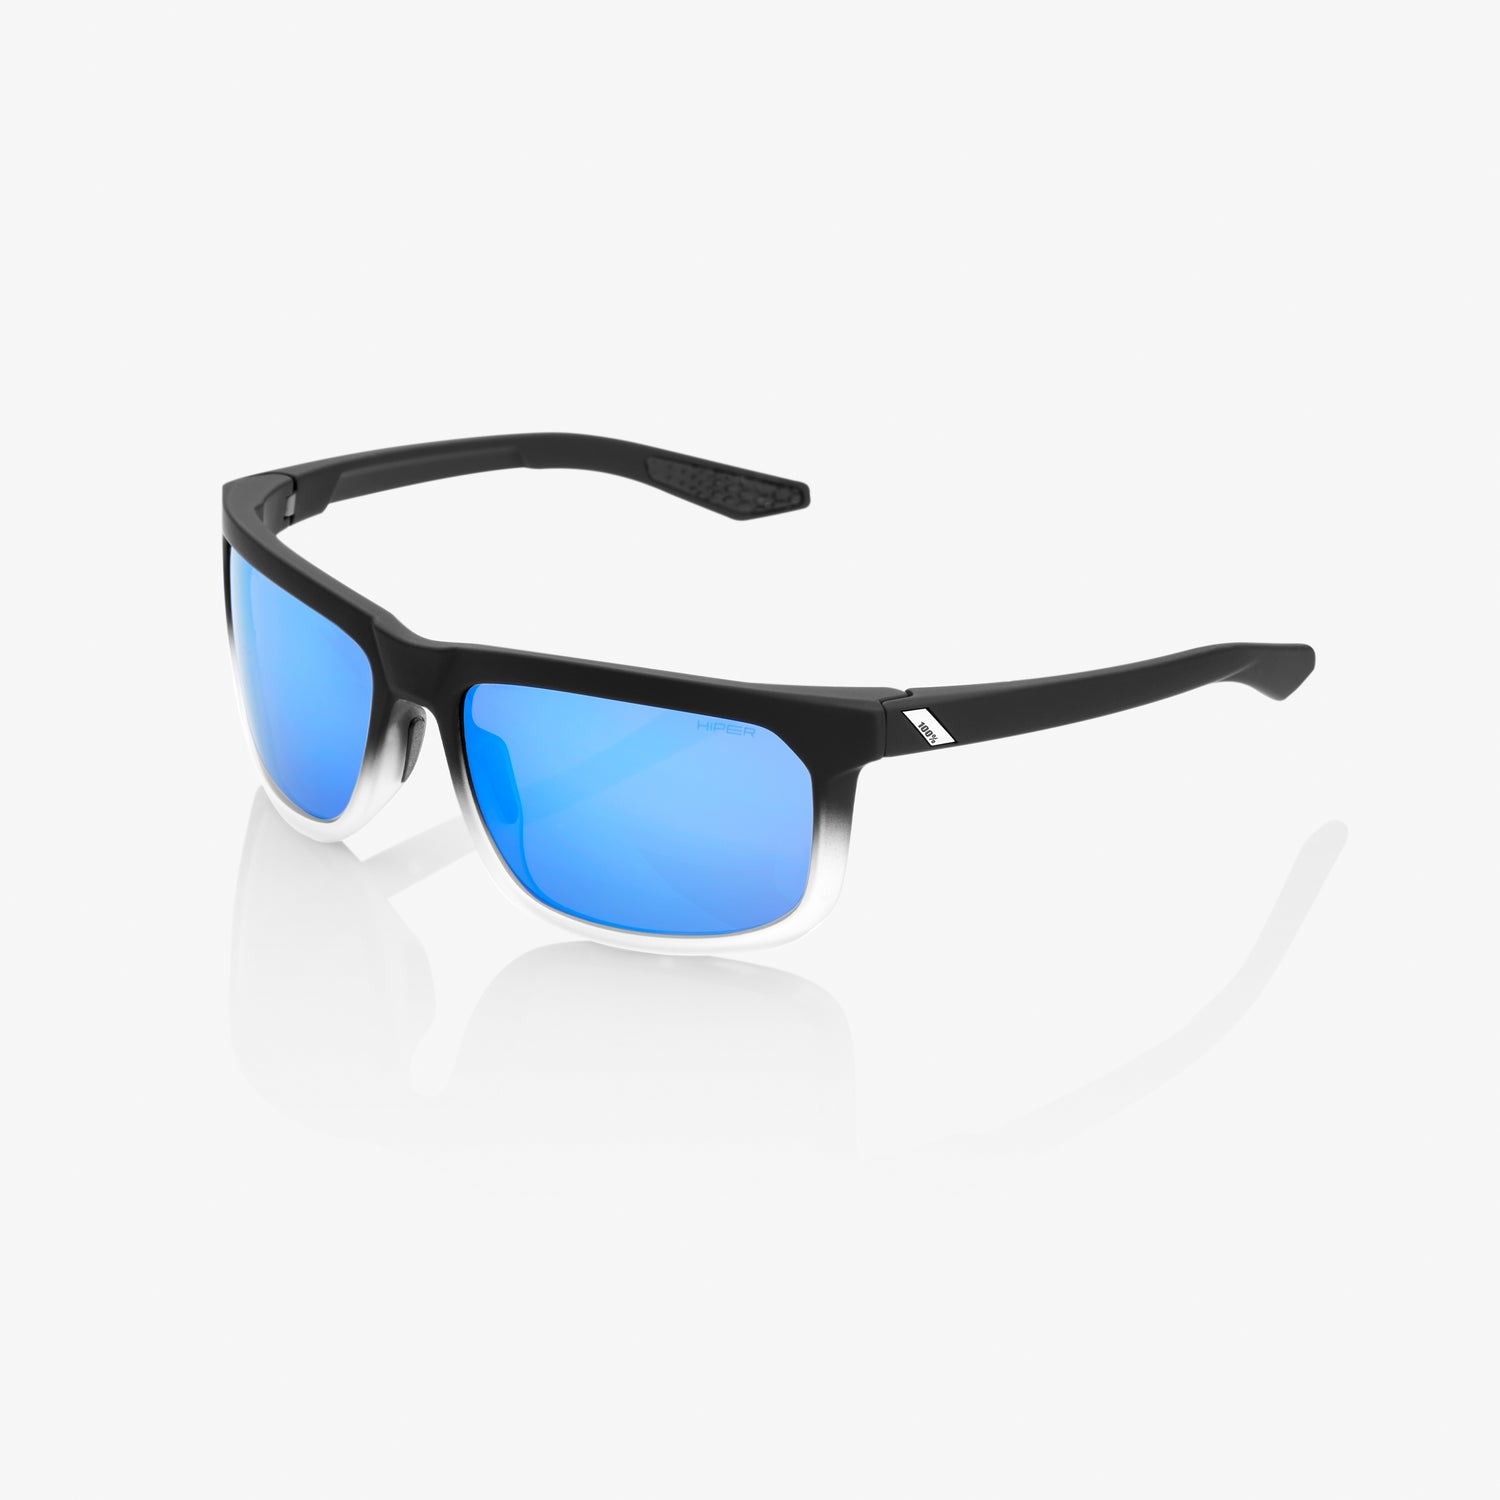 HAKAN - Soft Tact Fade Black / White - HiPER Blue Multilayer Mirror Lens